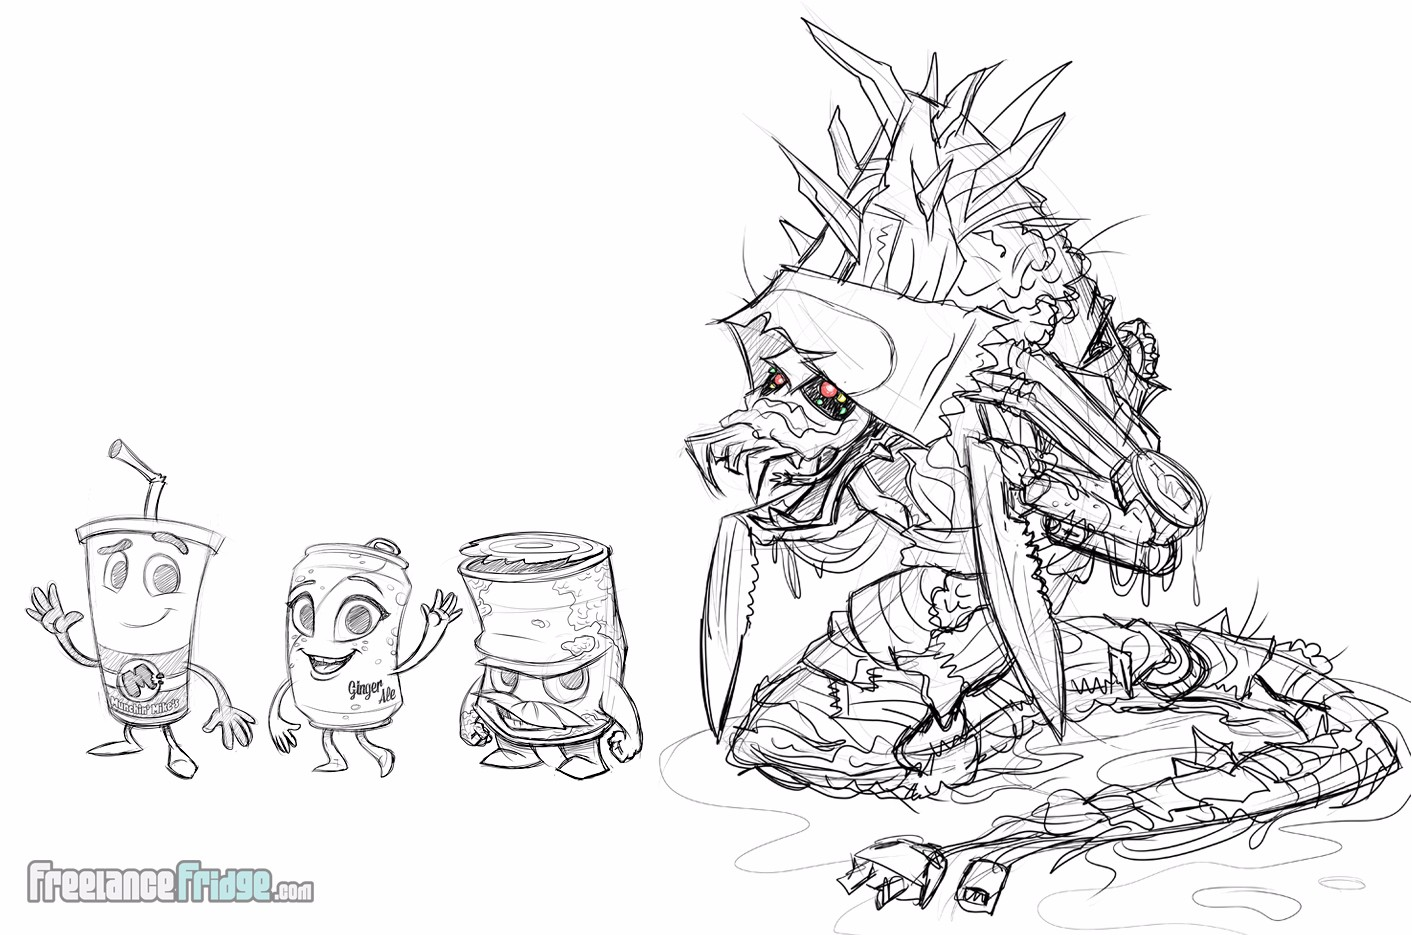 Character Design Sketches Concepts for Childrens Book Ricky and the Grim Wrapper Cups Cans Trash Supporting Characters